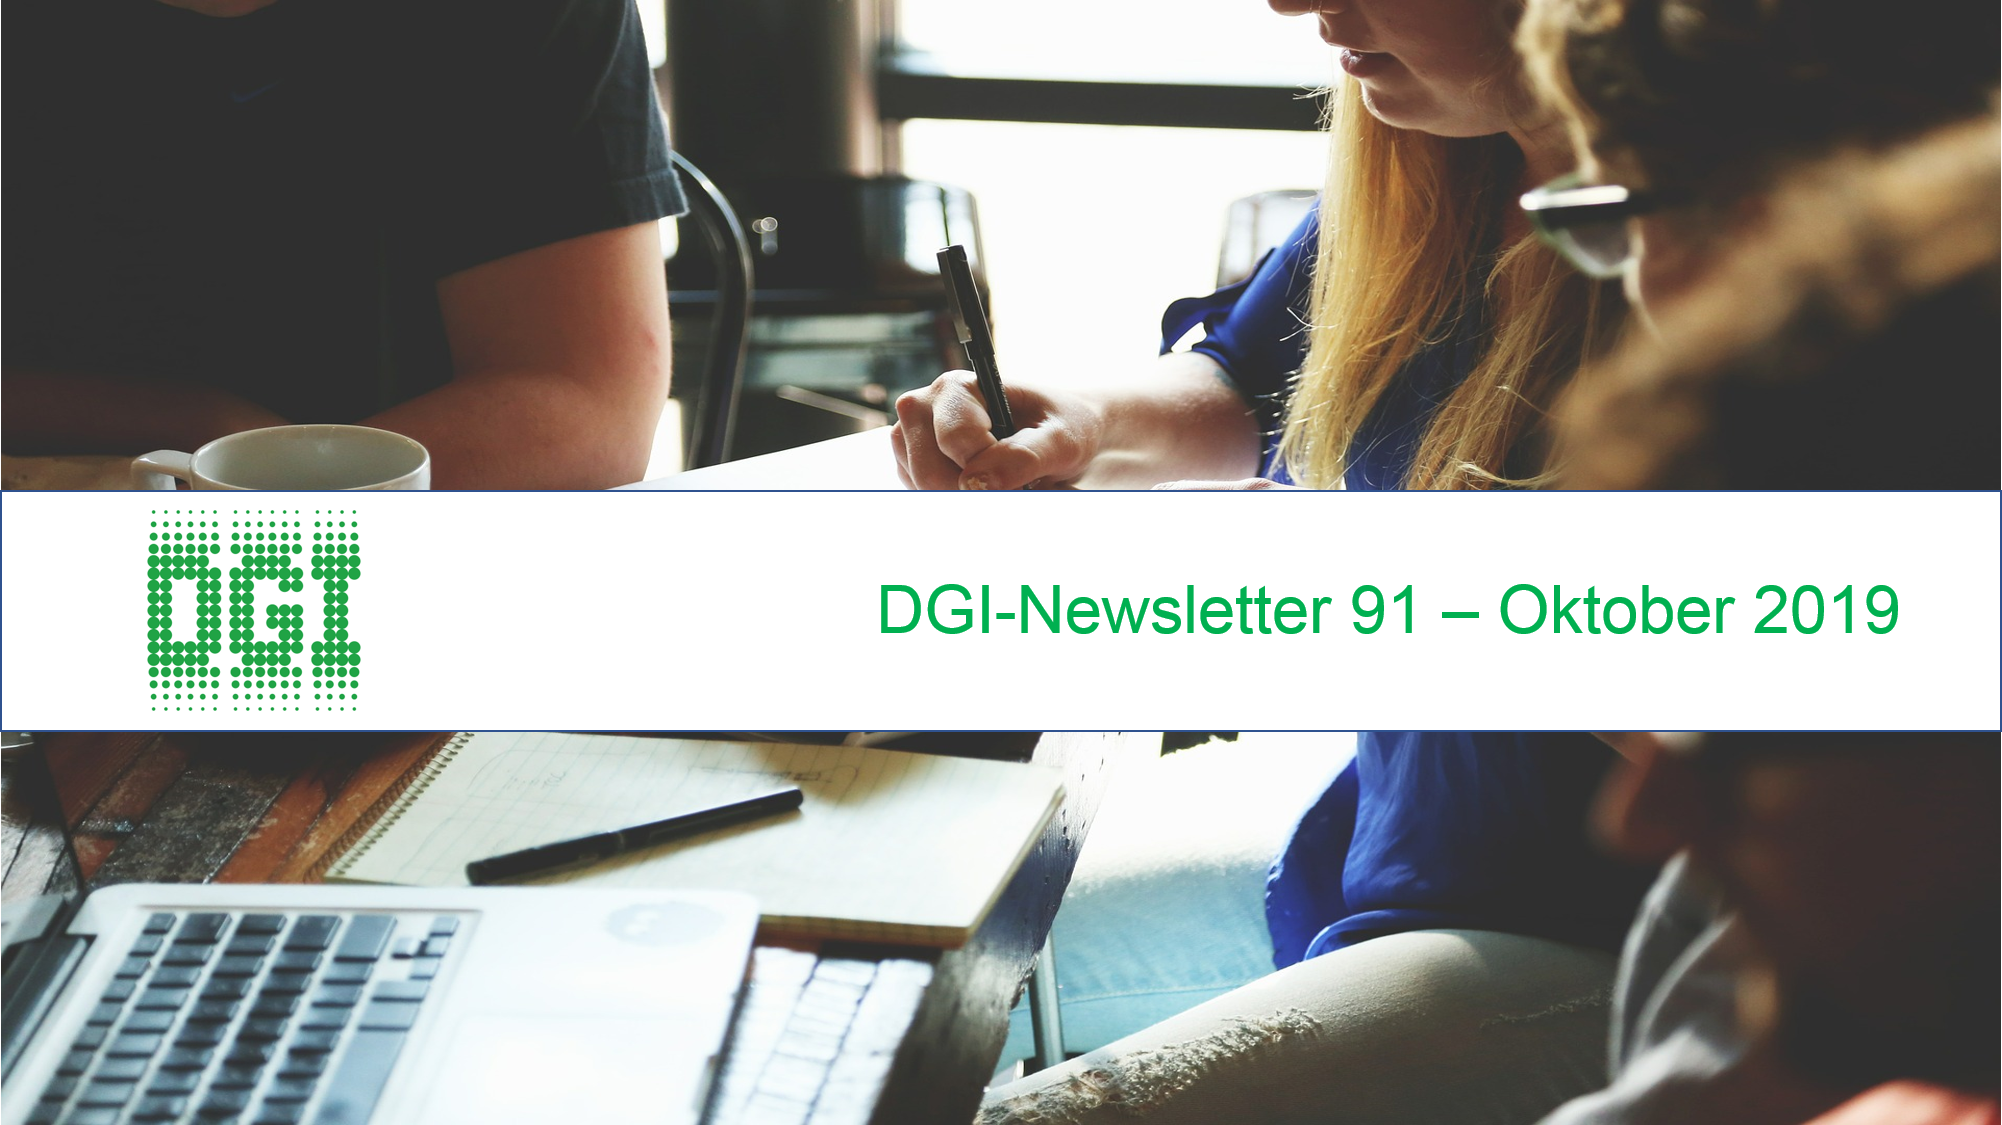 DGI-Newsletter 91 – Oktober 2019